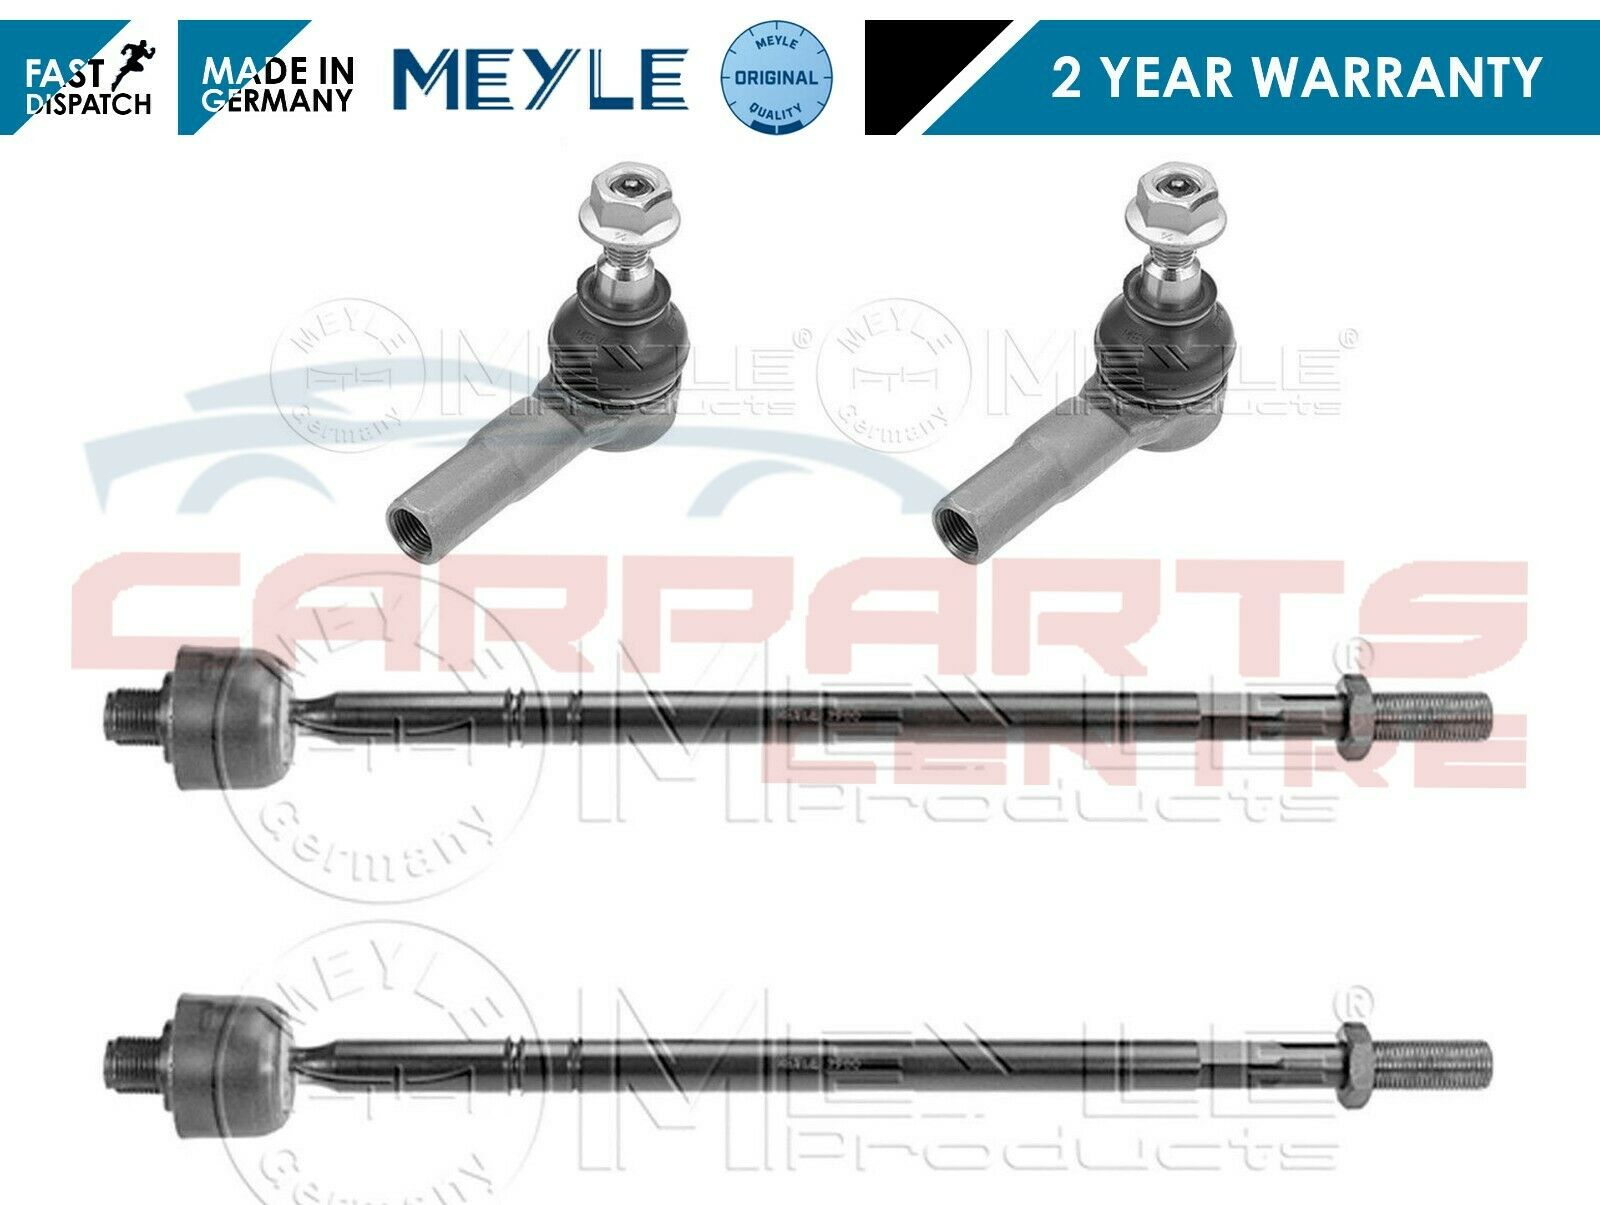 FOR MERCEDES SPRINTER 3T 3,5T 4,6T 5T FRONT INNER TRACK RODS TIE ROD ENDS